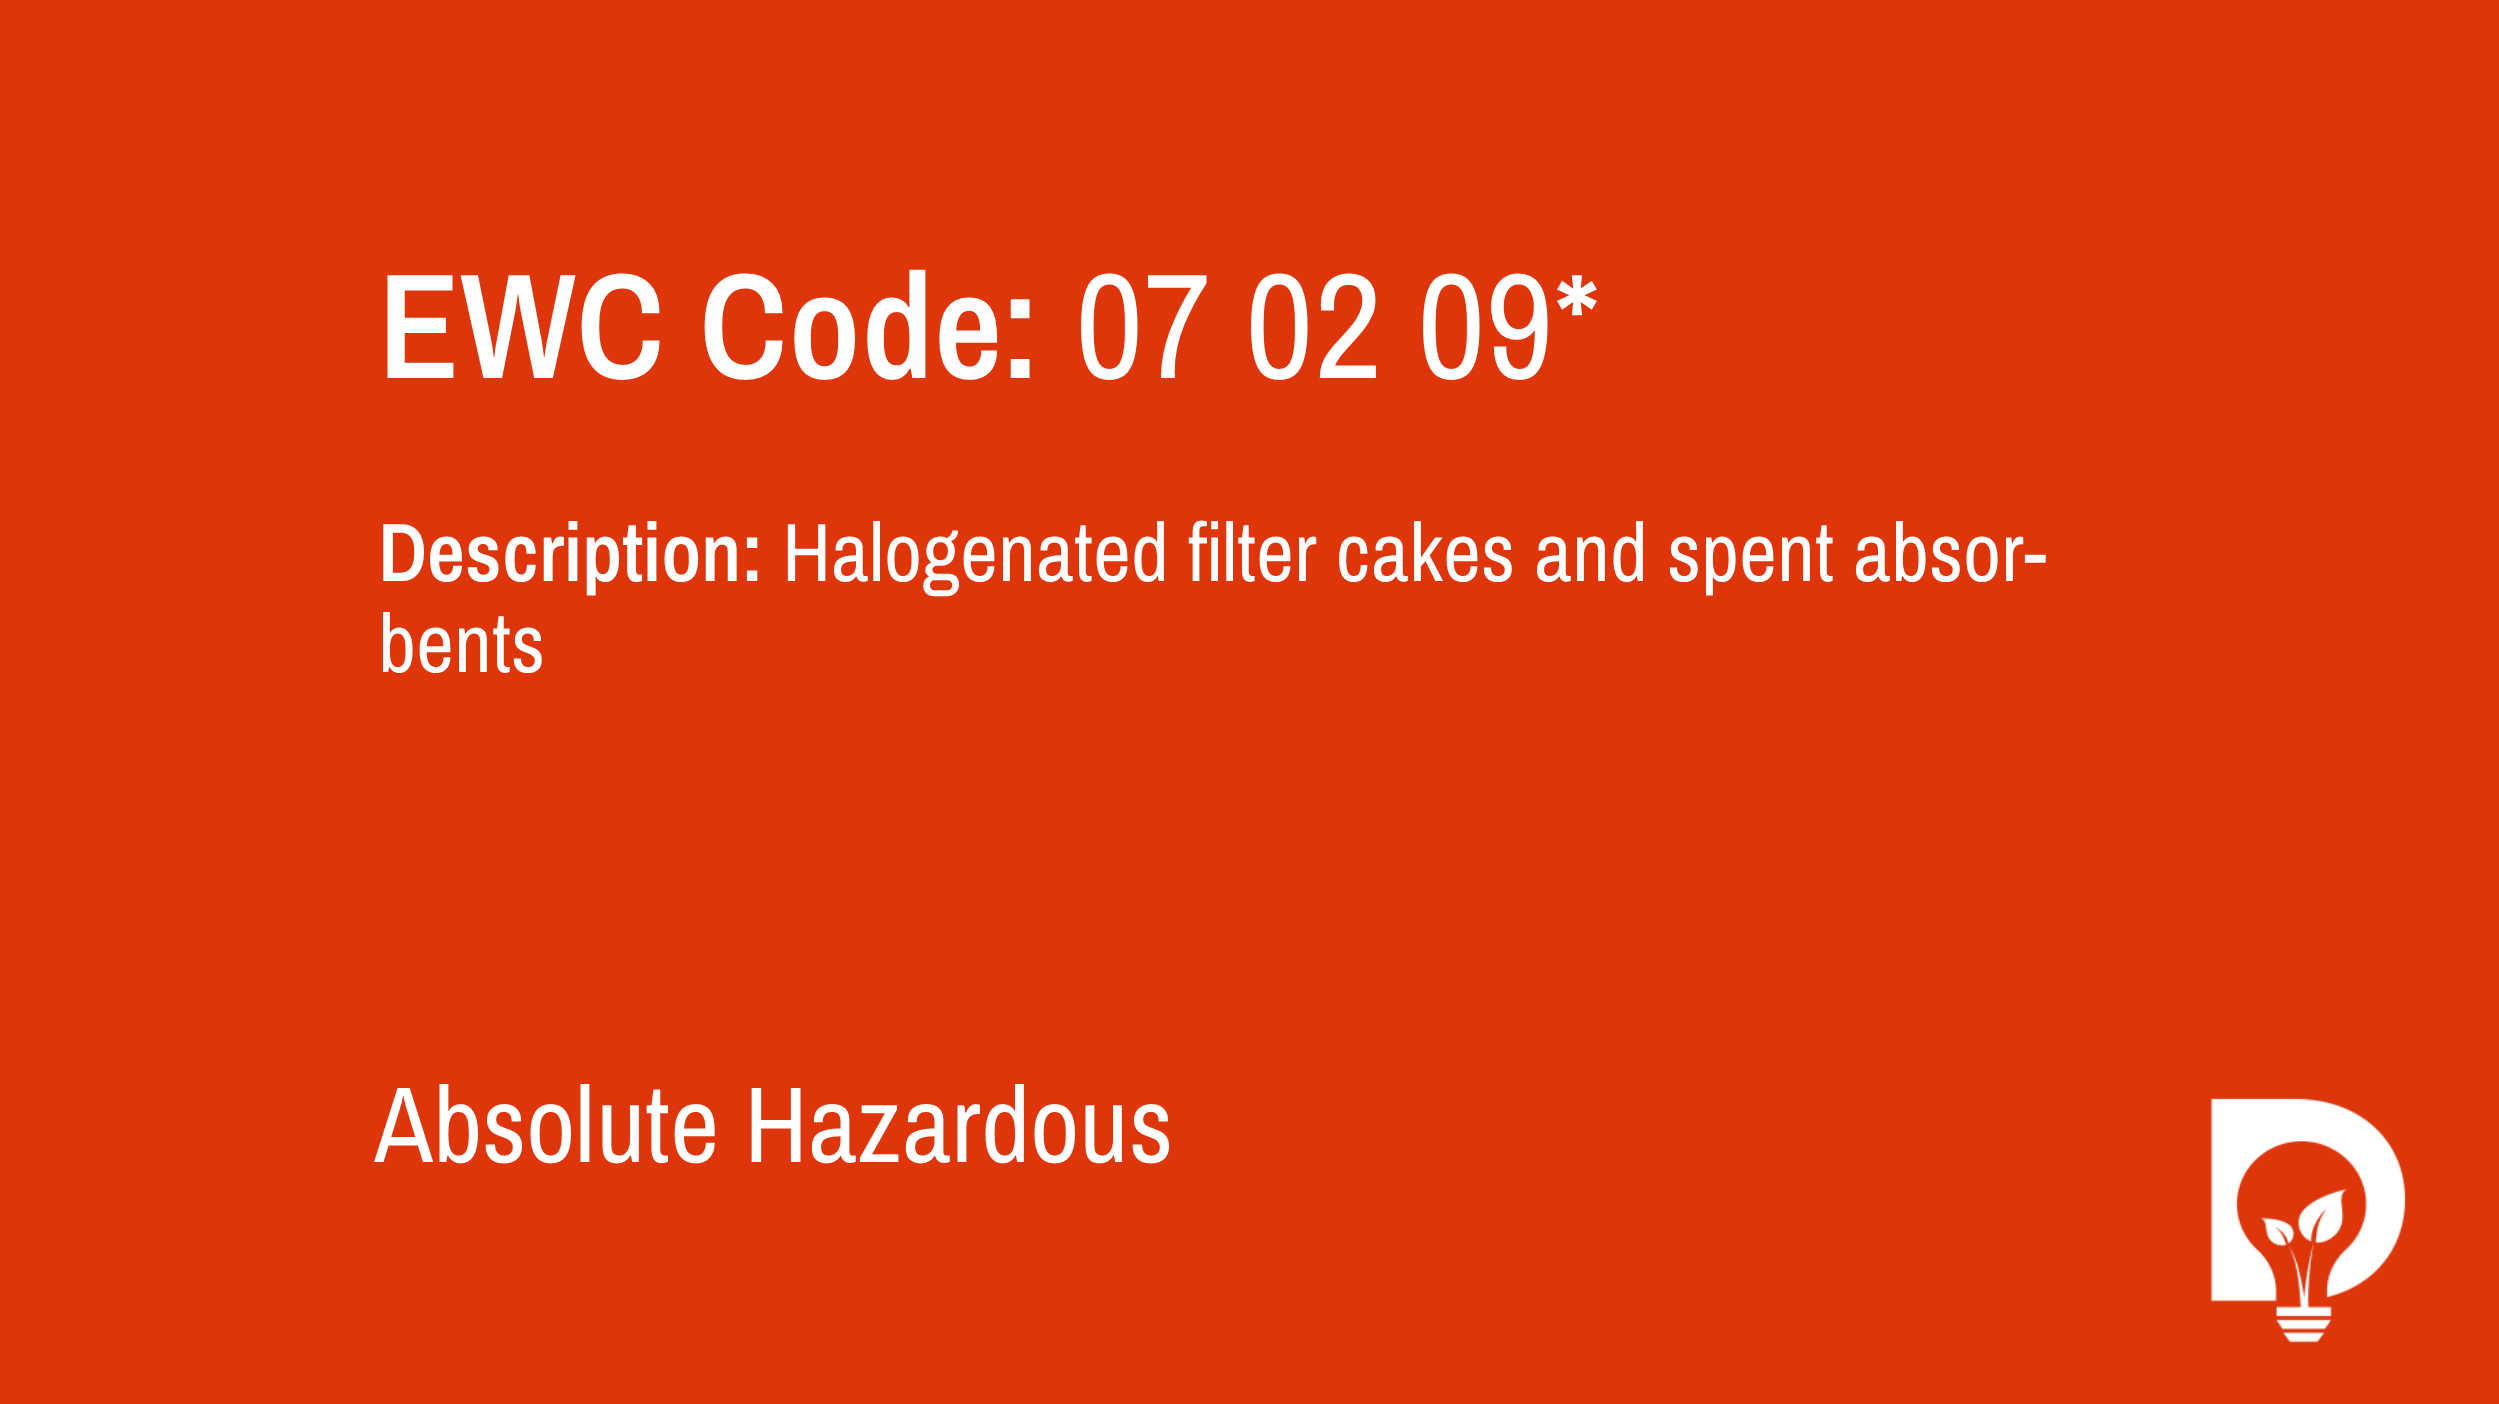 EWC Code: 07 02 09* - halogenated filter cakes and spent absorbents. Type: Absolute Hazardous. Image by Dsposal